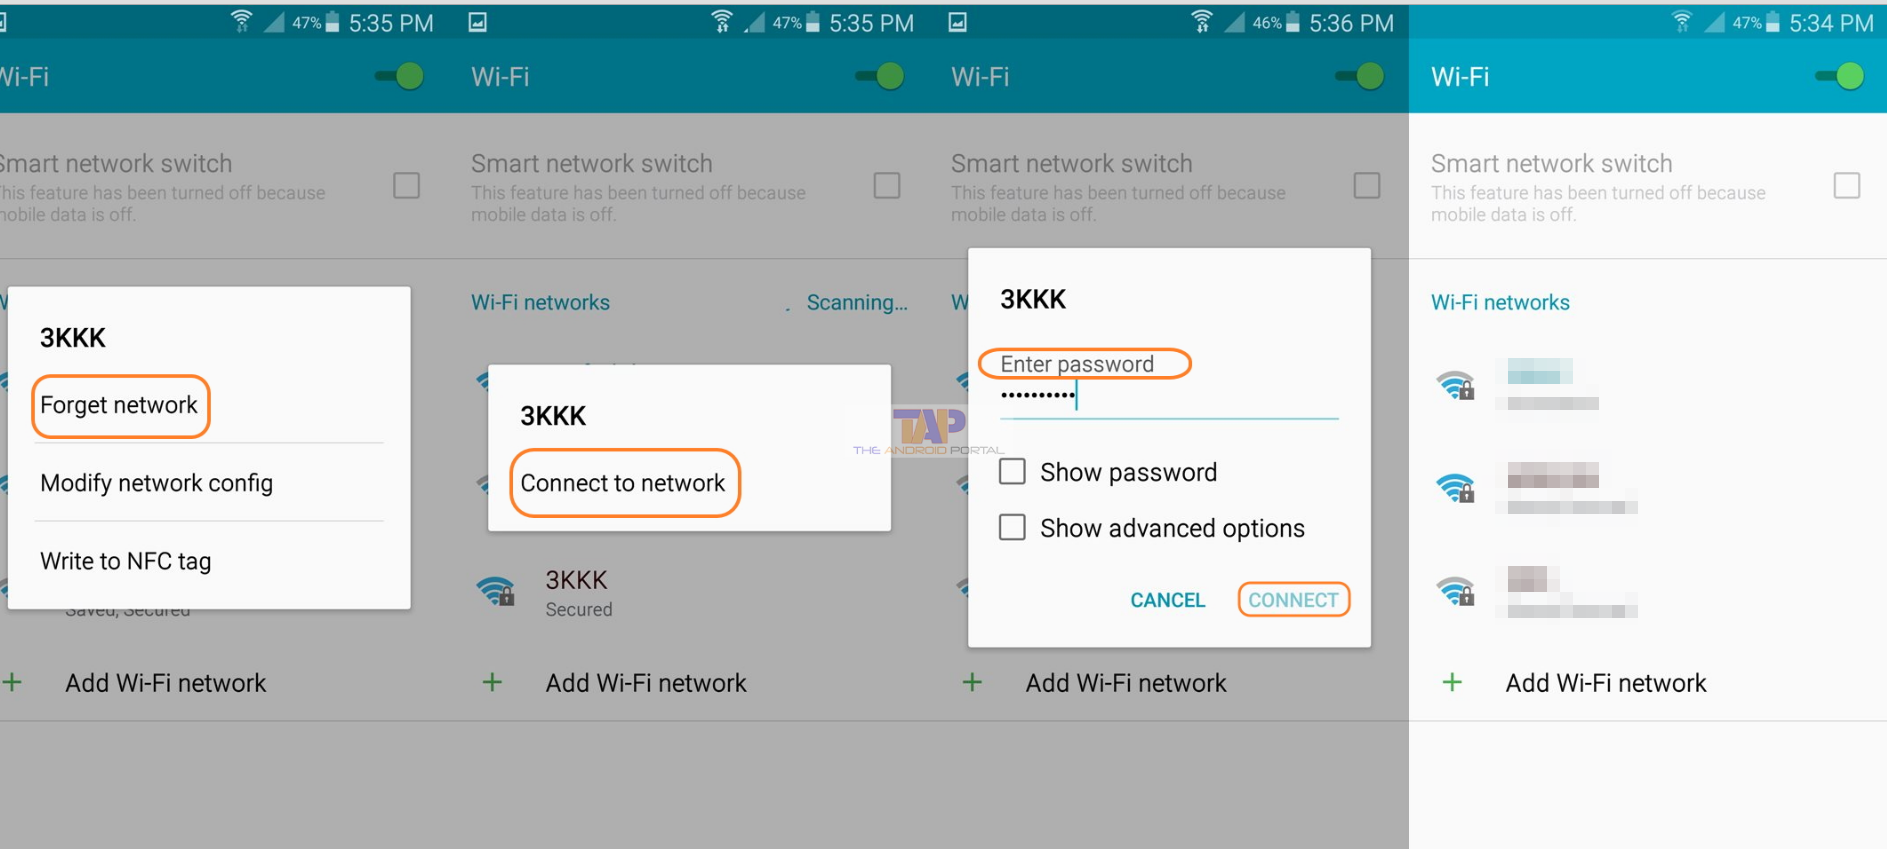 Reconnecting with the Wi-Fi Network